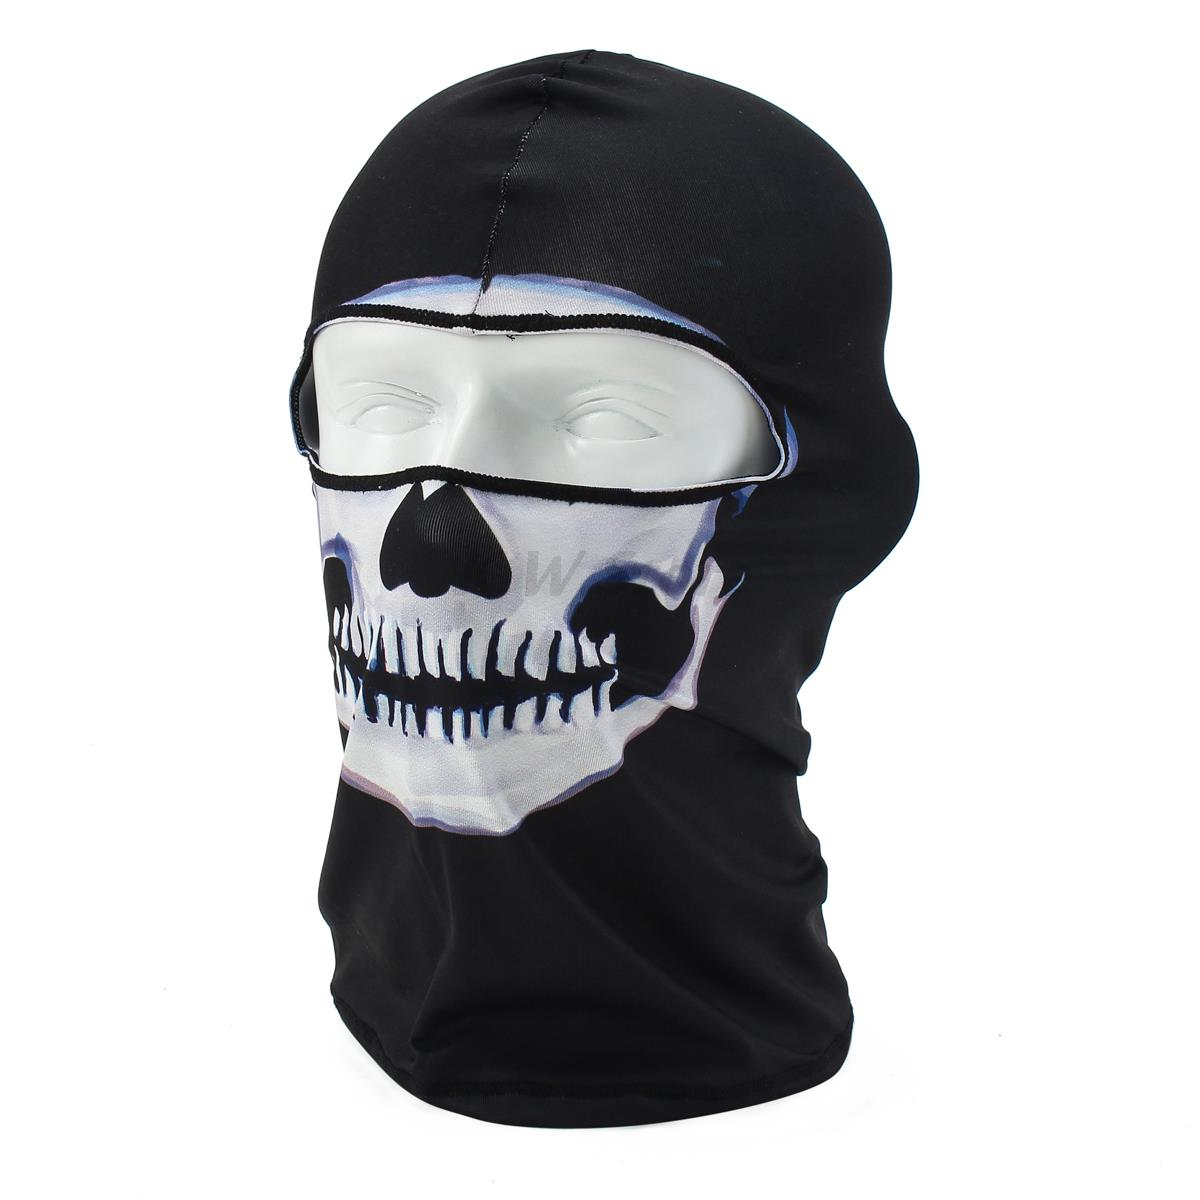 New 3d Quick-drying Balaclava Hat Uv Protect Prevent Bask Cap Outdoor Sports Cap Bicycle Motorcycle Cycling Skull Mask W2 bask stretch glove v2 4022a